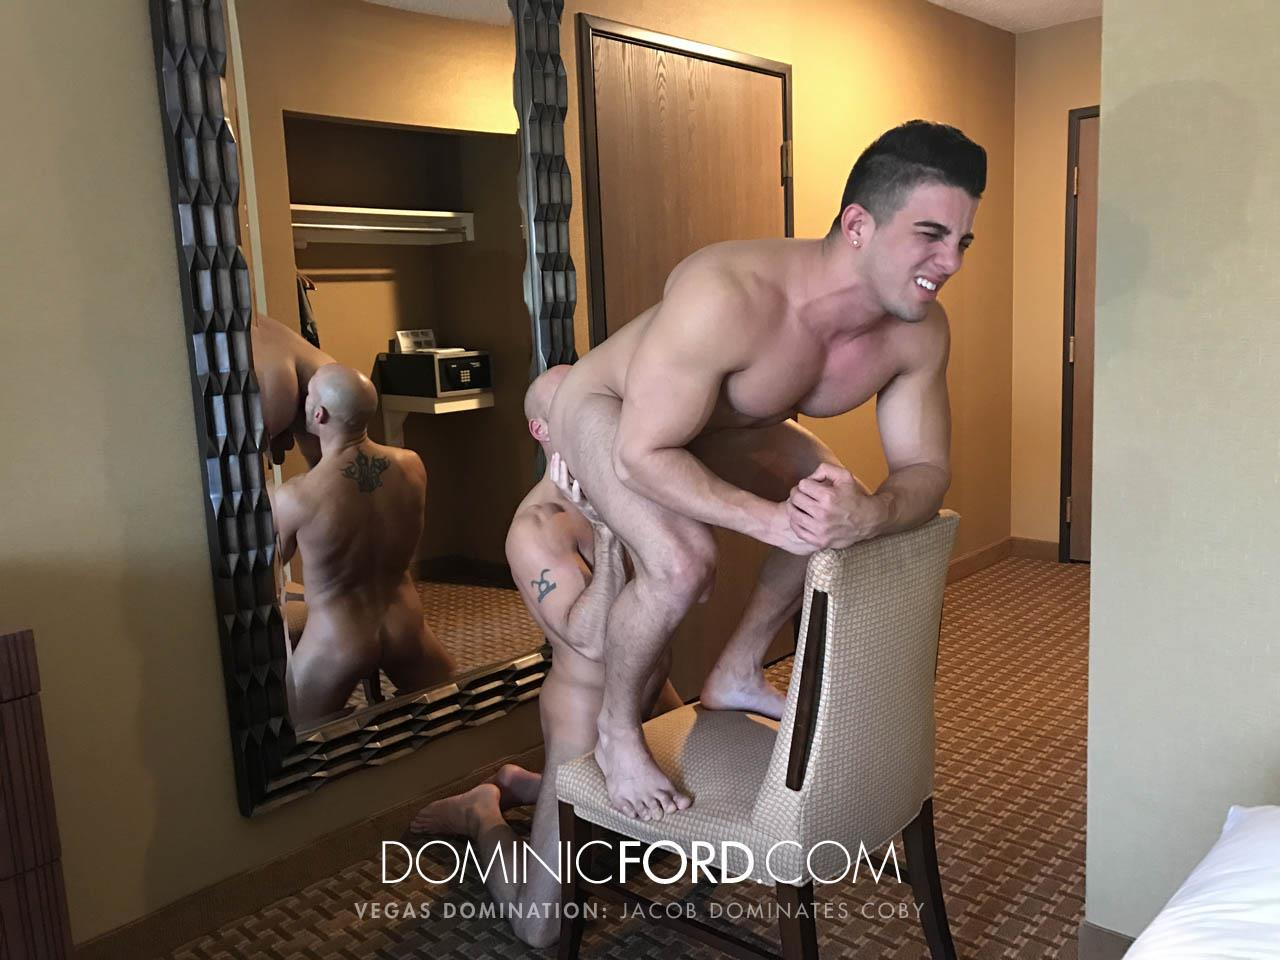 Dominic Ford Fucking in A Vegas Hotel Free Gay Porn 15 Getting Fucked By A Big Uncut Cock In A Vegas Hotel